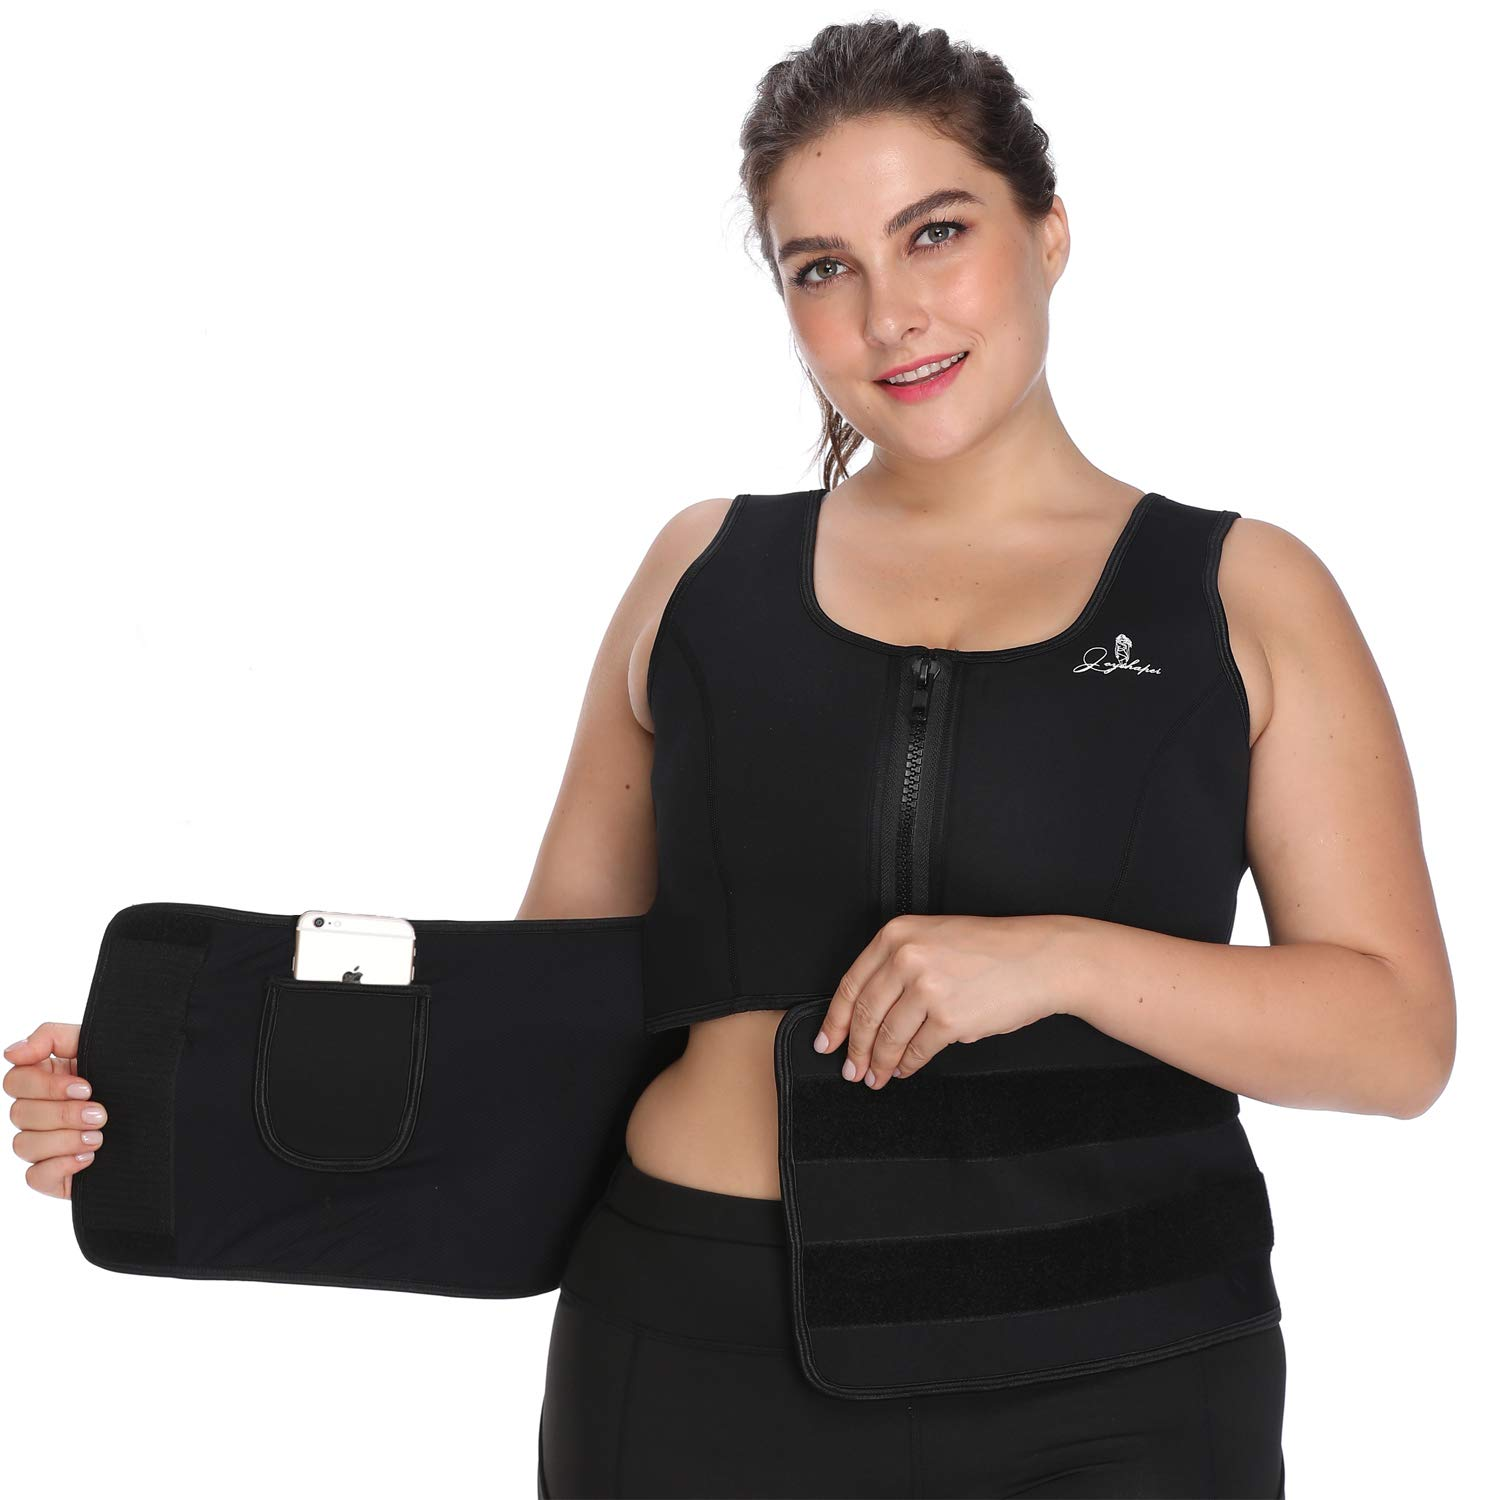 f5c99b0336d ✅Hot Sweat   Lose Weight Fast✅ ---Our Slimming Body Shaper for women  Enhancing Thermal Vest is designed with neoprene